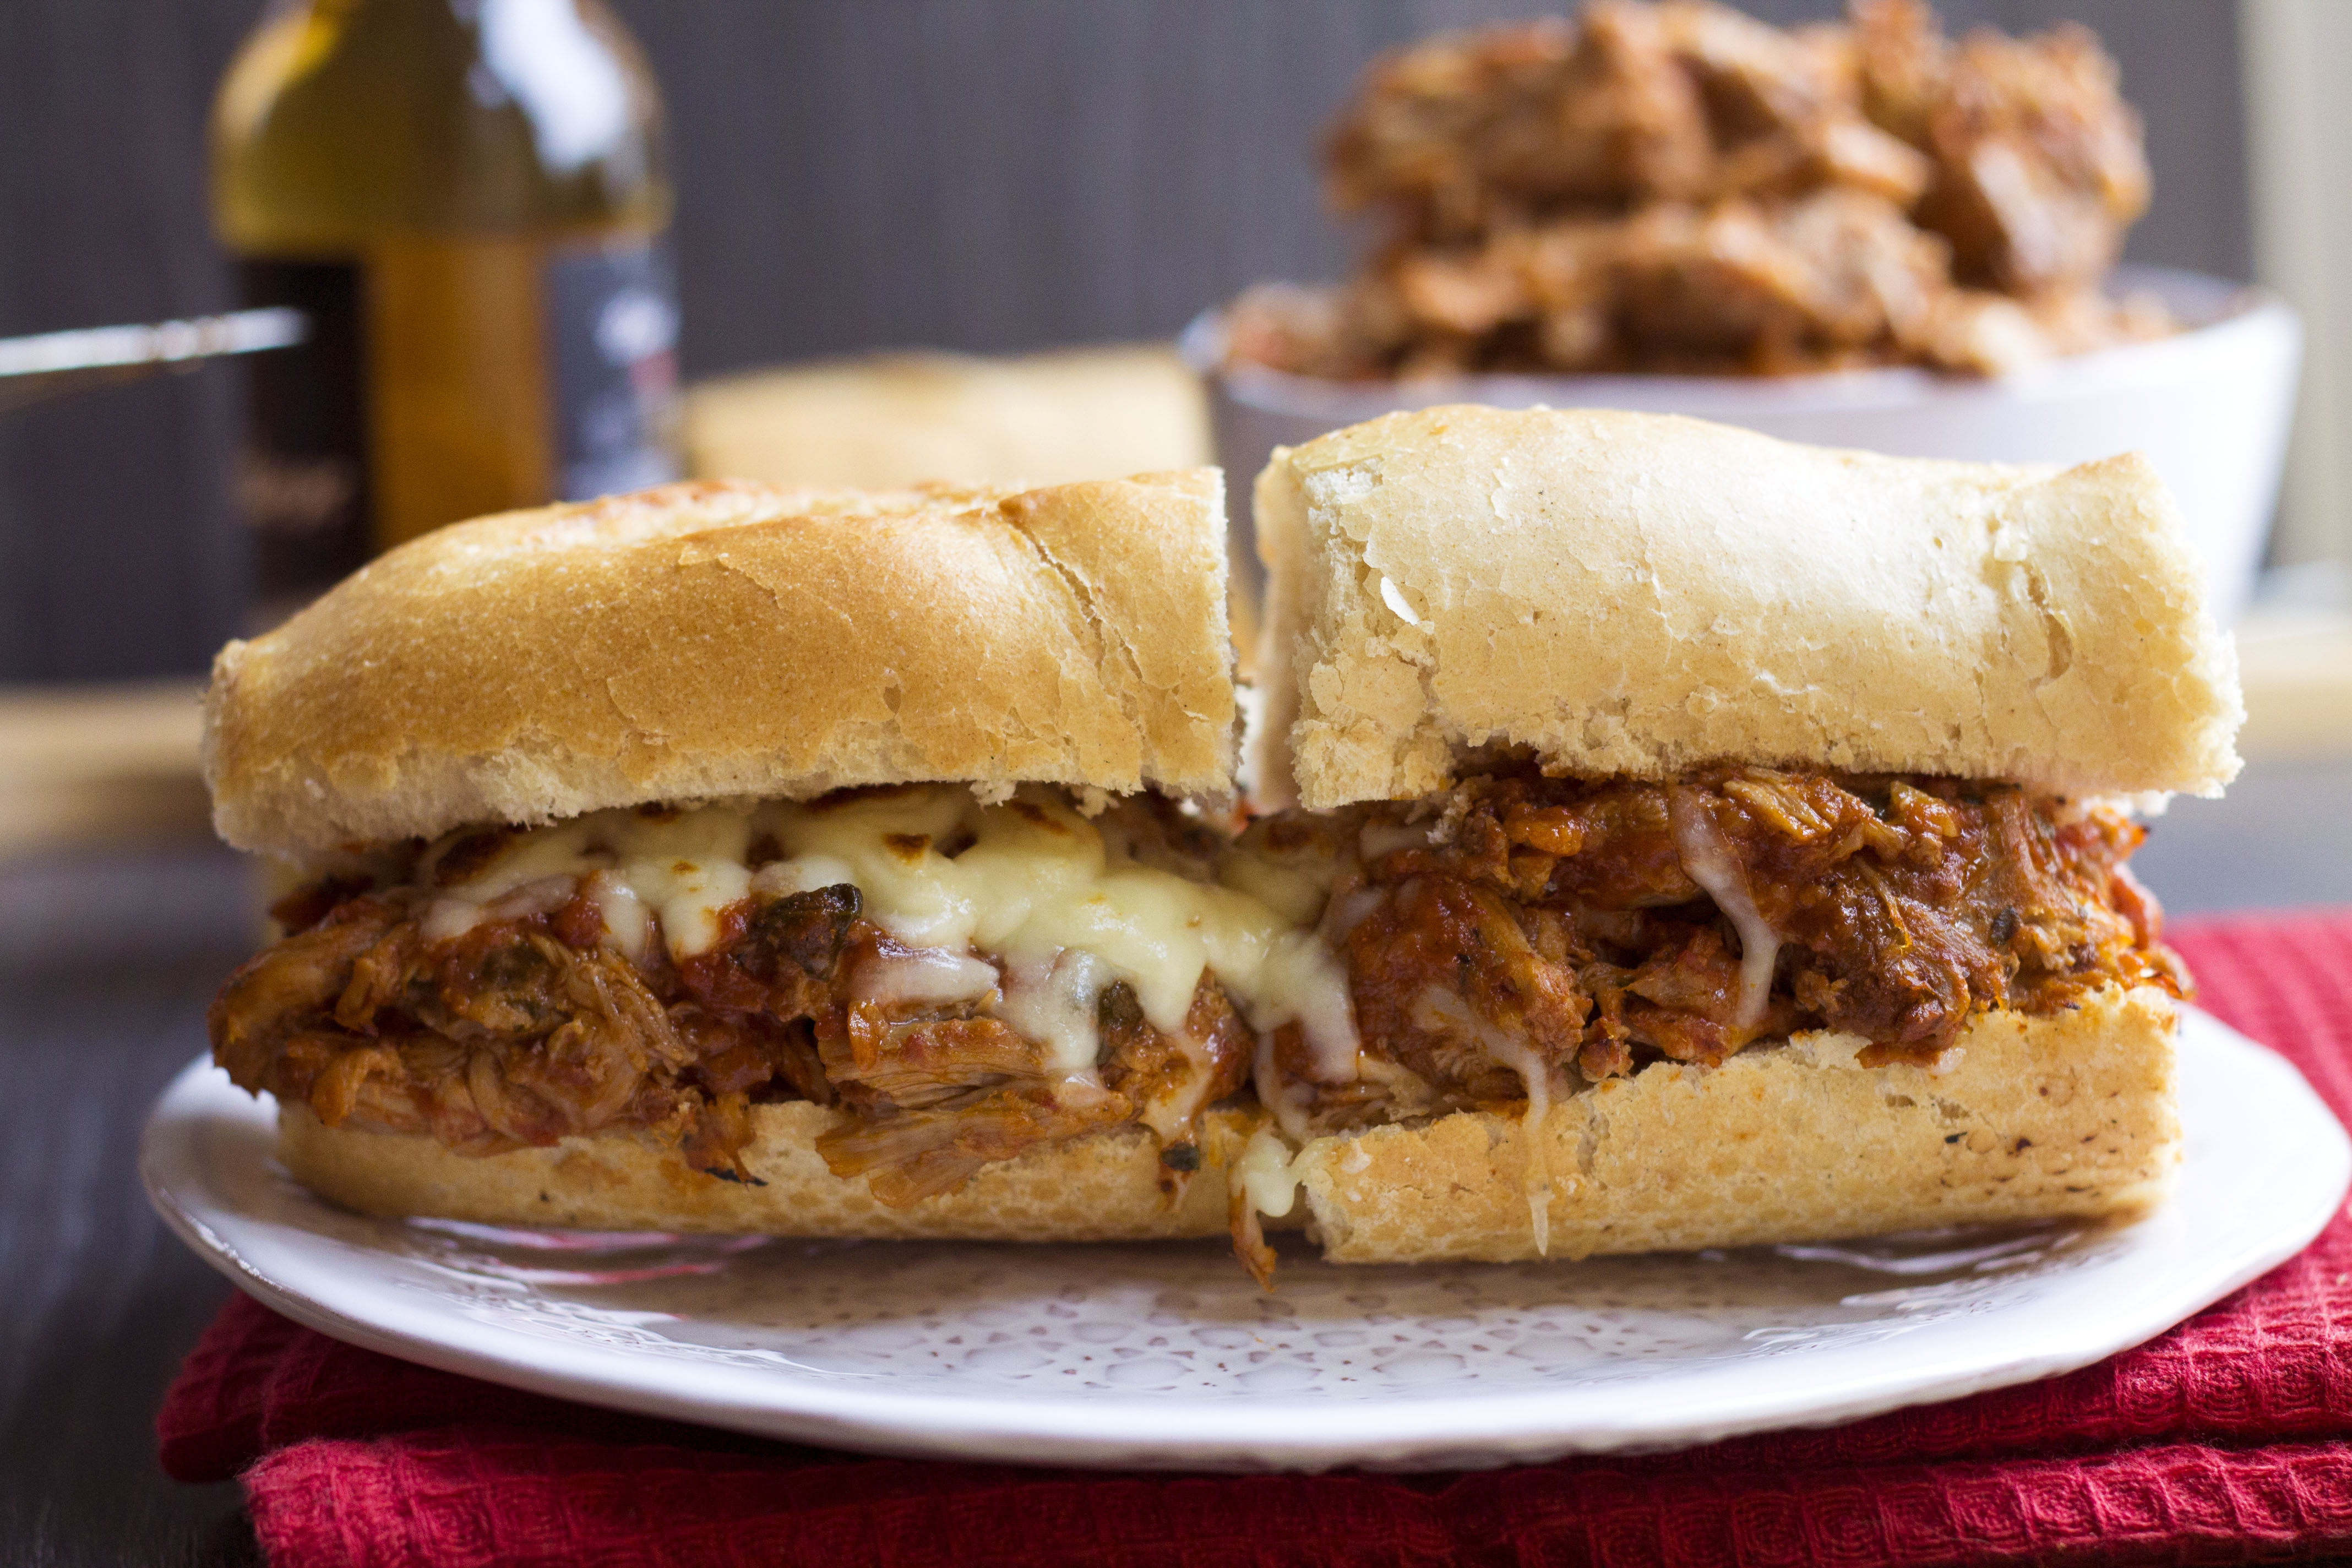 Italian pulled pork between a ciabatta roll with melted cheese oozing out.